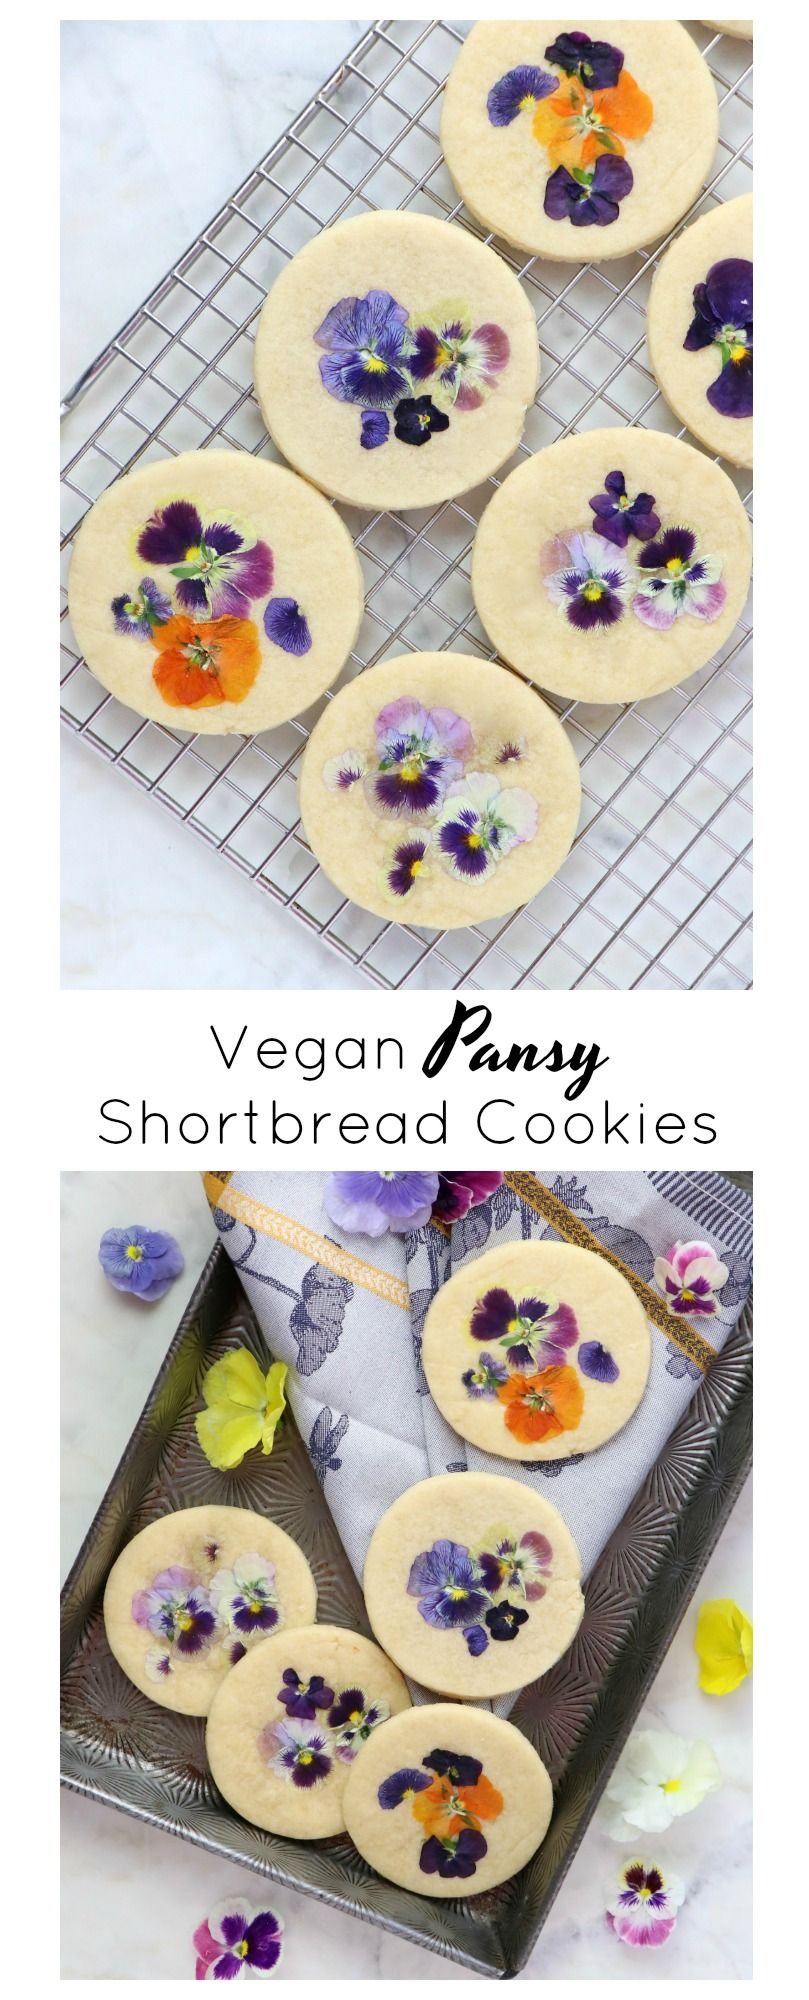 Vegan Pansy Shortbread Eat Drink Shrink Recipe In 2020 Vegan Sweets Vegan Save Food